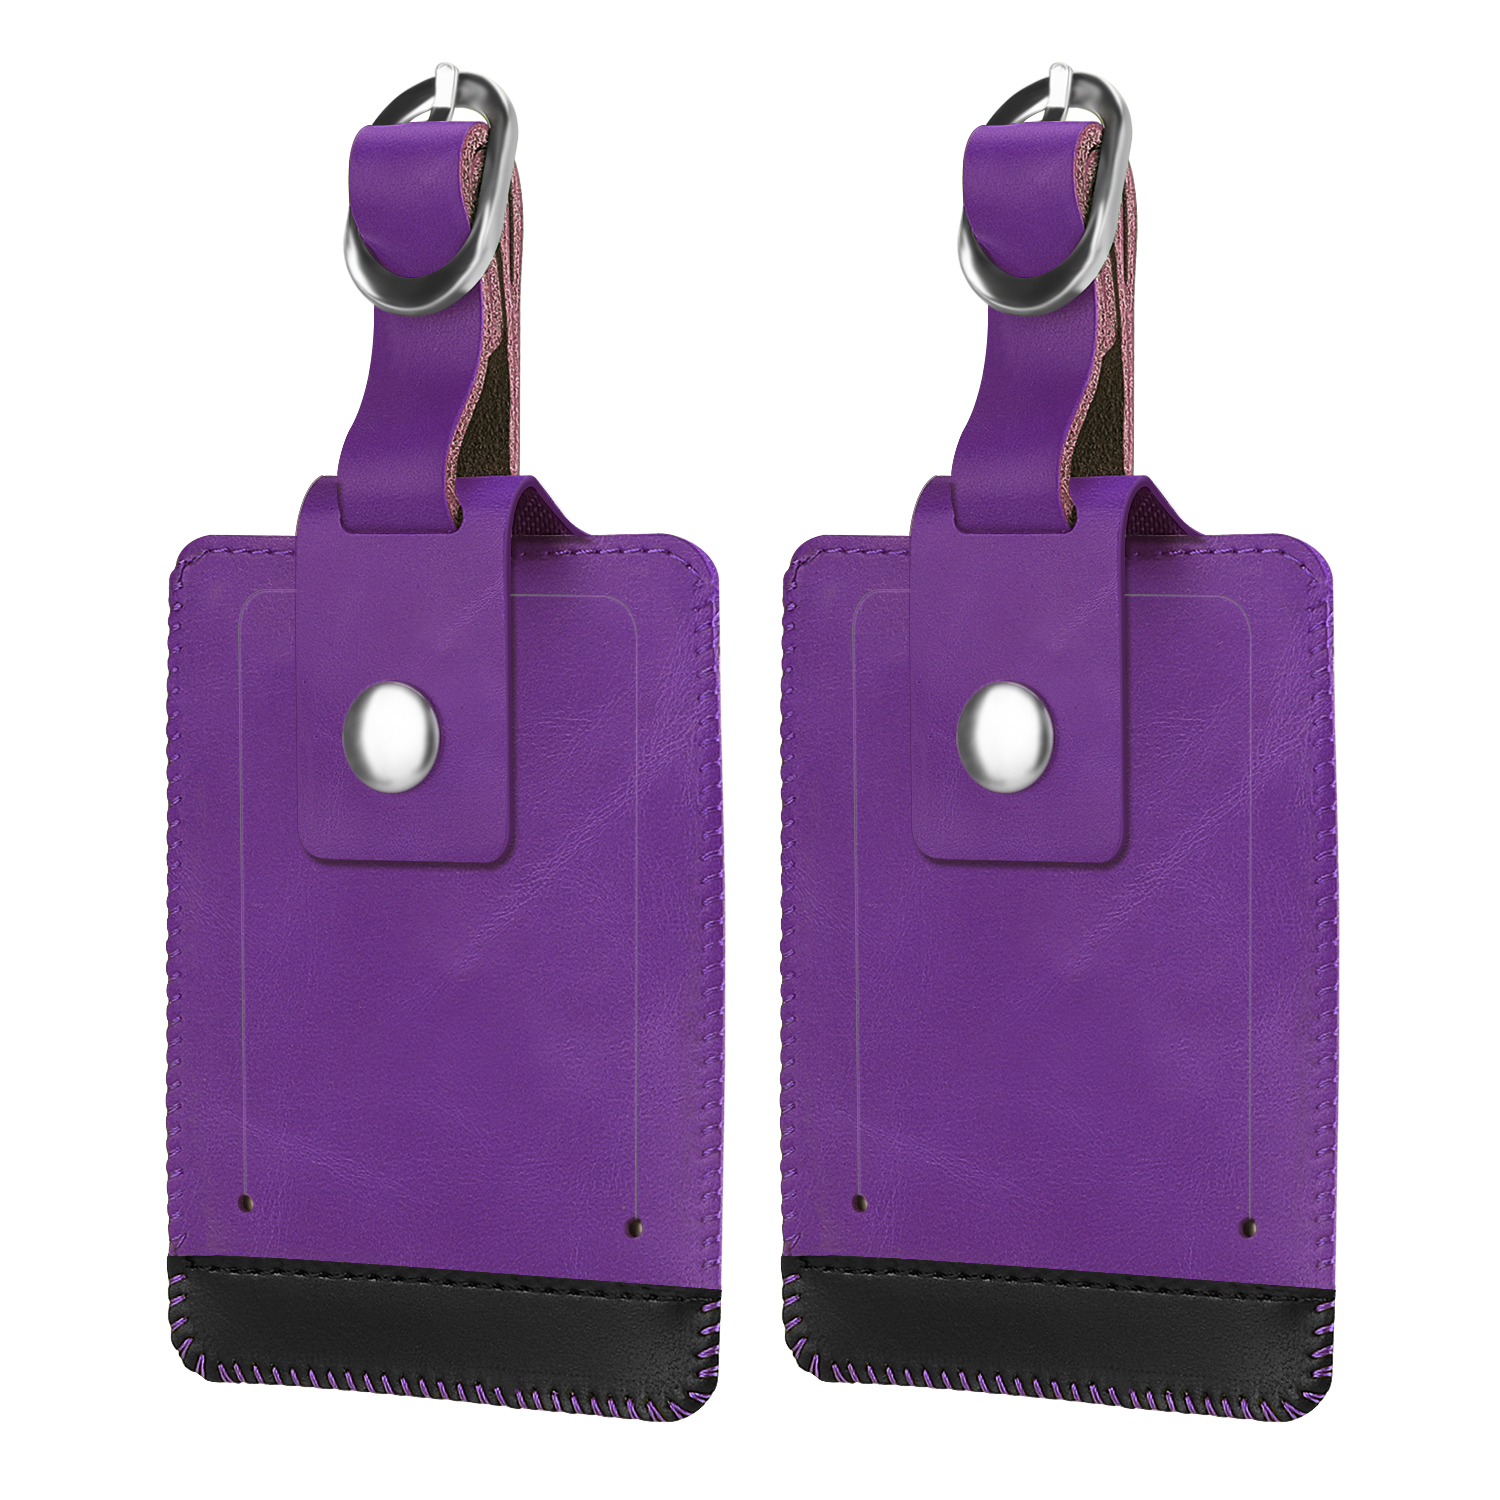 Luggage Suitcase Tags, Fintie Set of 2 Leather Name ID Label Holder Travel Baggage Suitcase Identifier, Purple